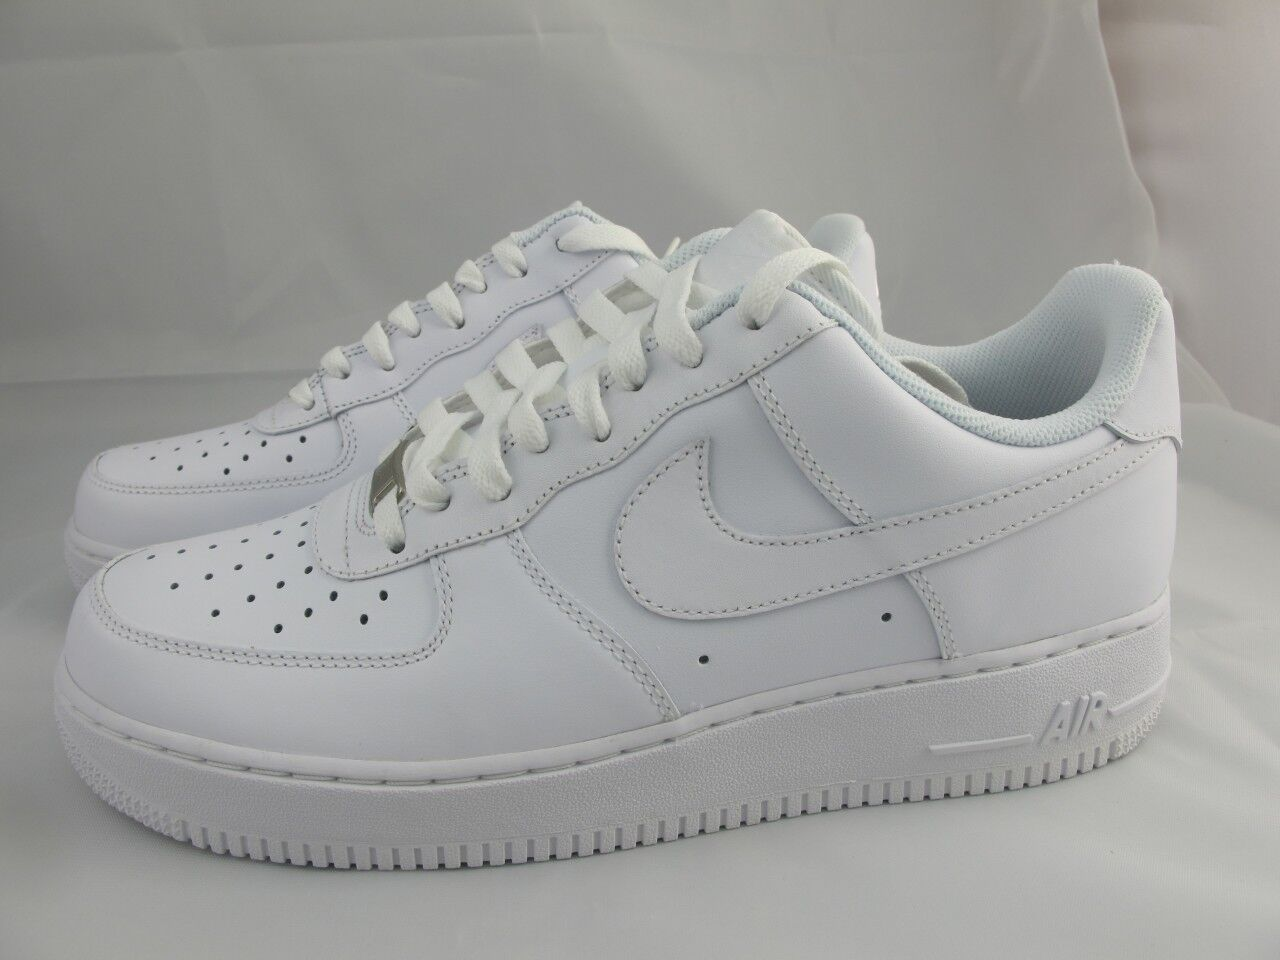 NEW MEN'S NIKE AIR FORCE 1 LOW '07 315122-111 WHITE